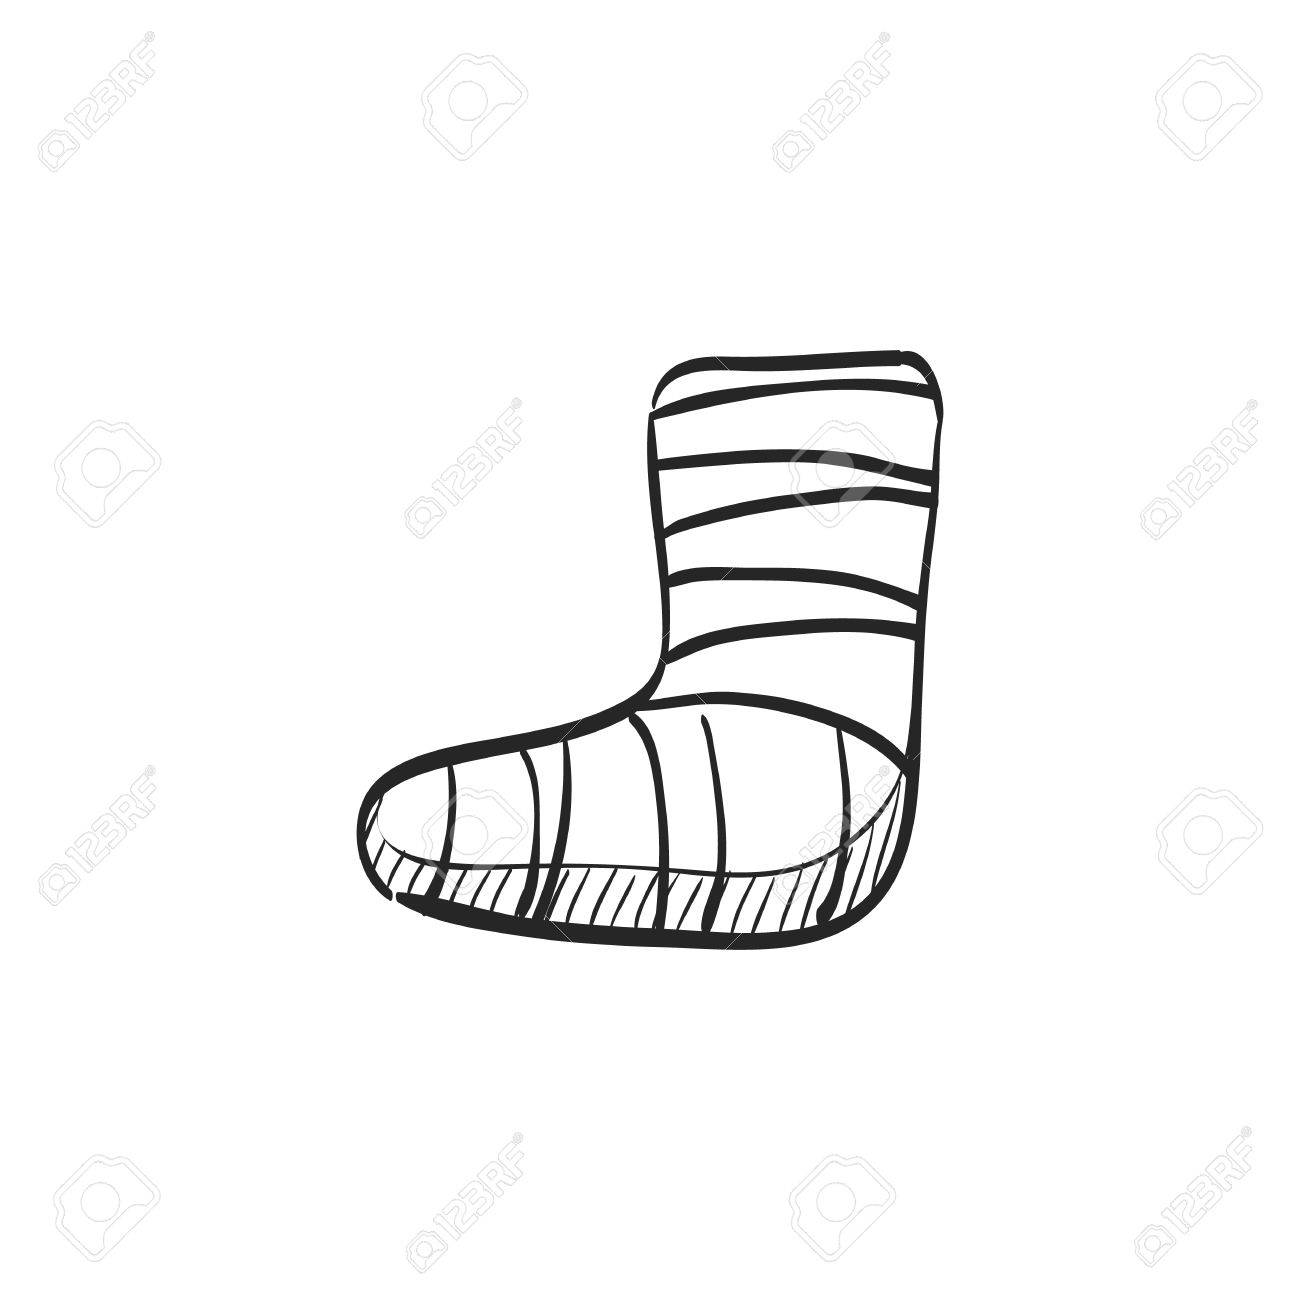 1300x1300 Injured Foot Icon In Doodle Sketch Lines. Gypsum Cast Medical